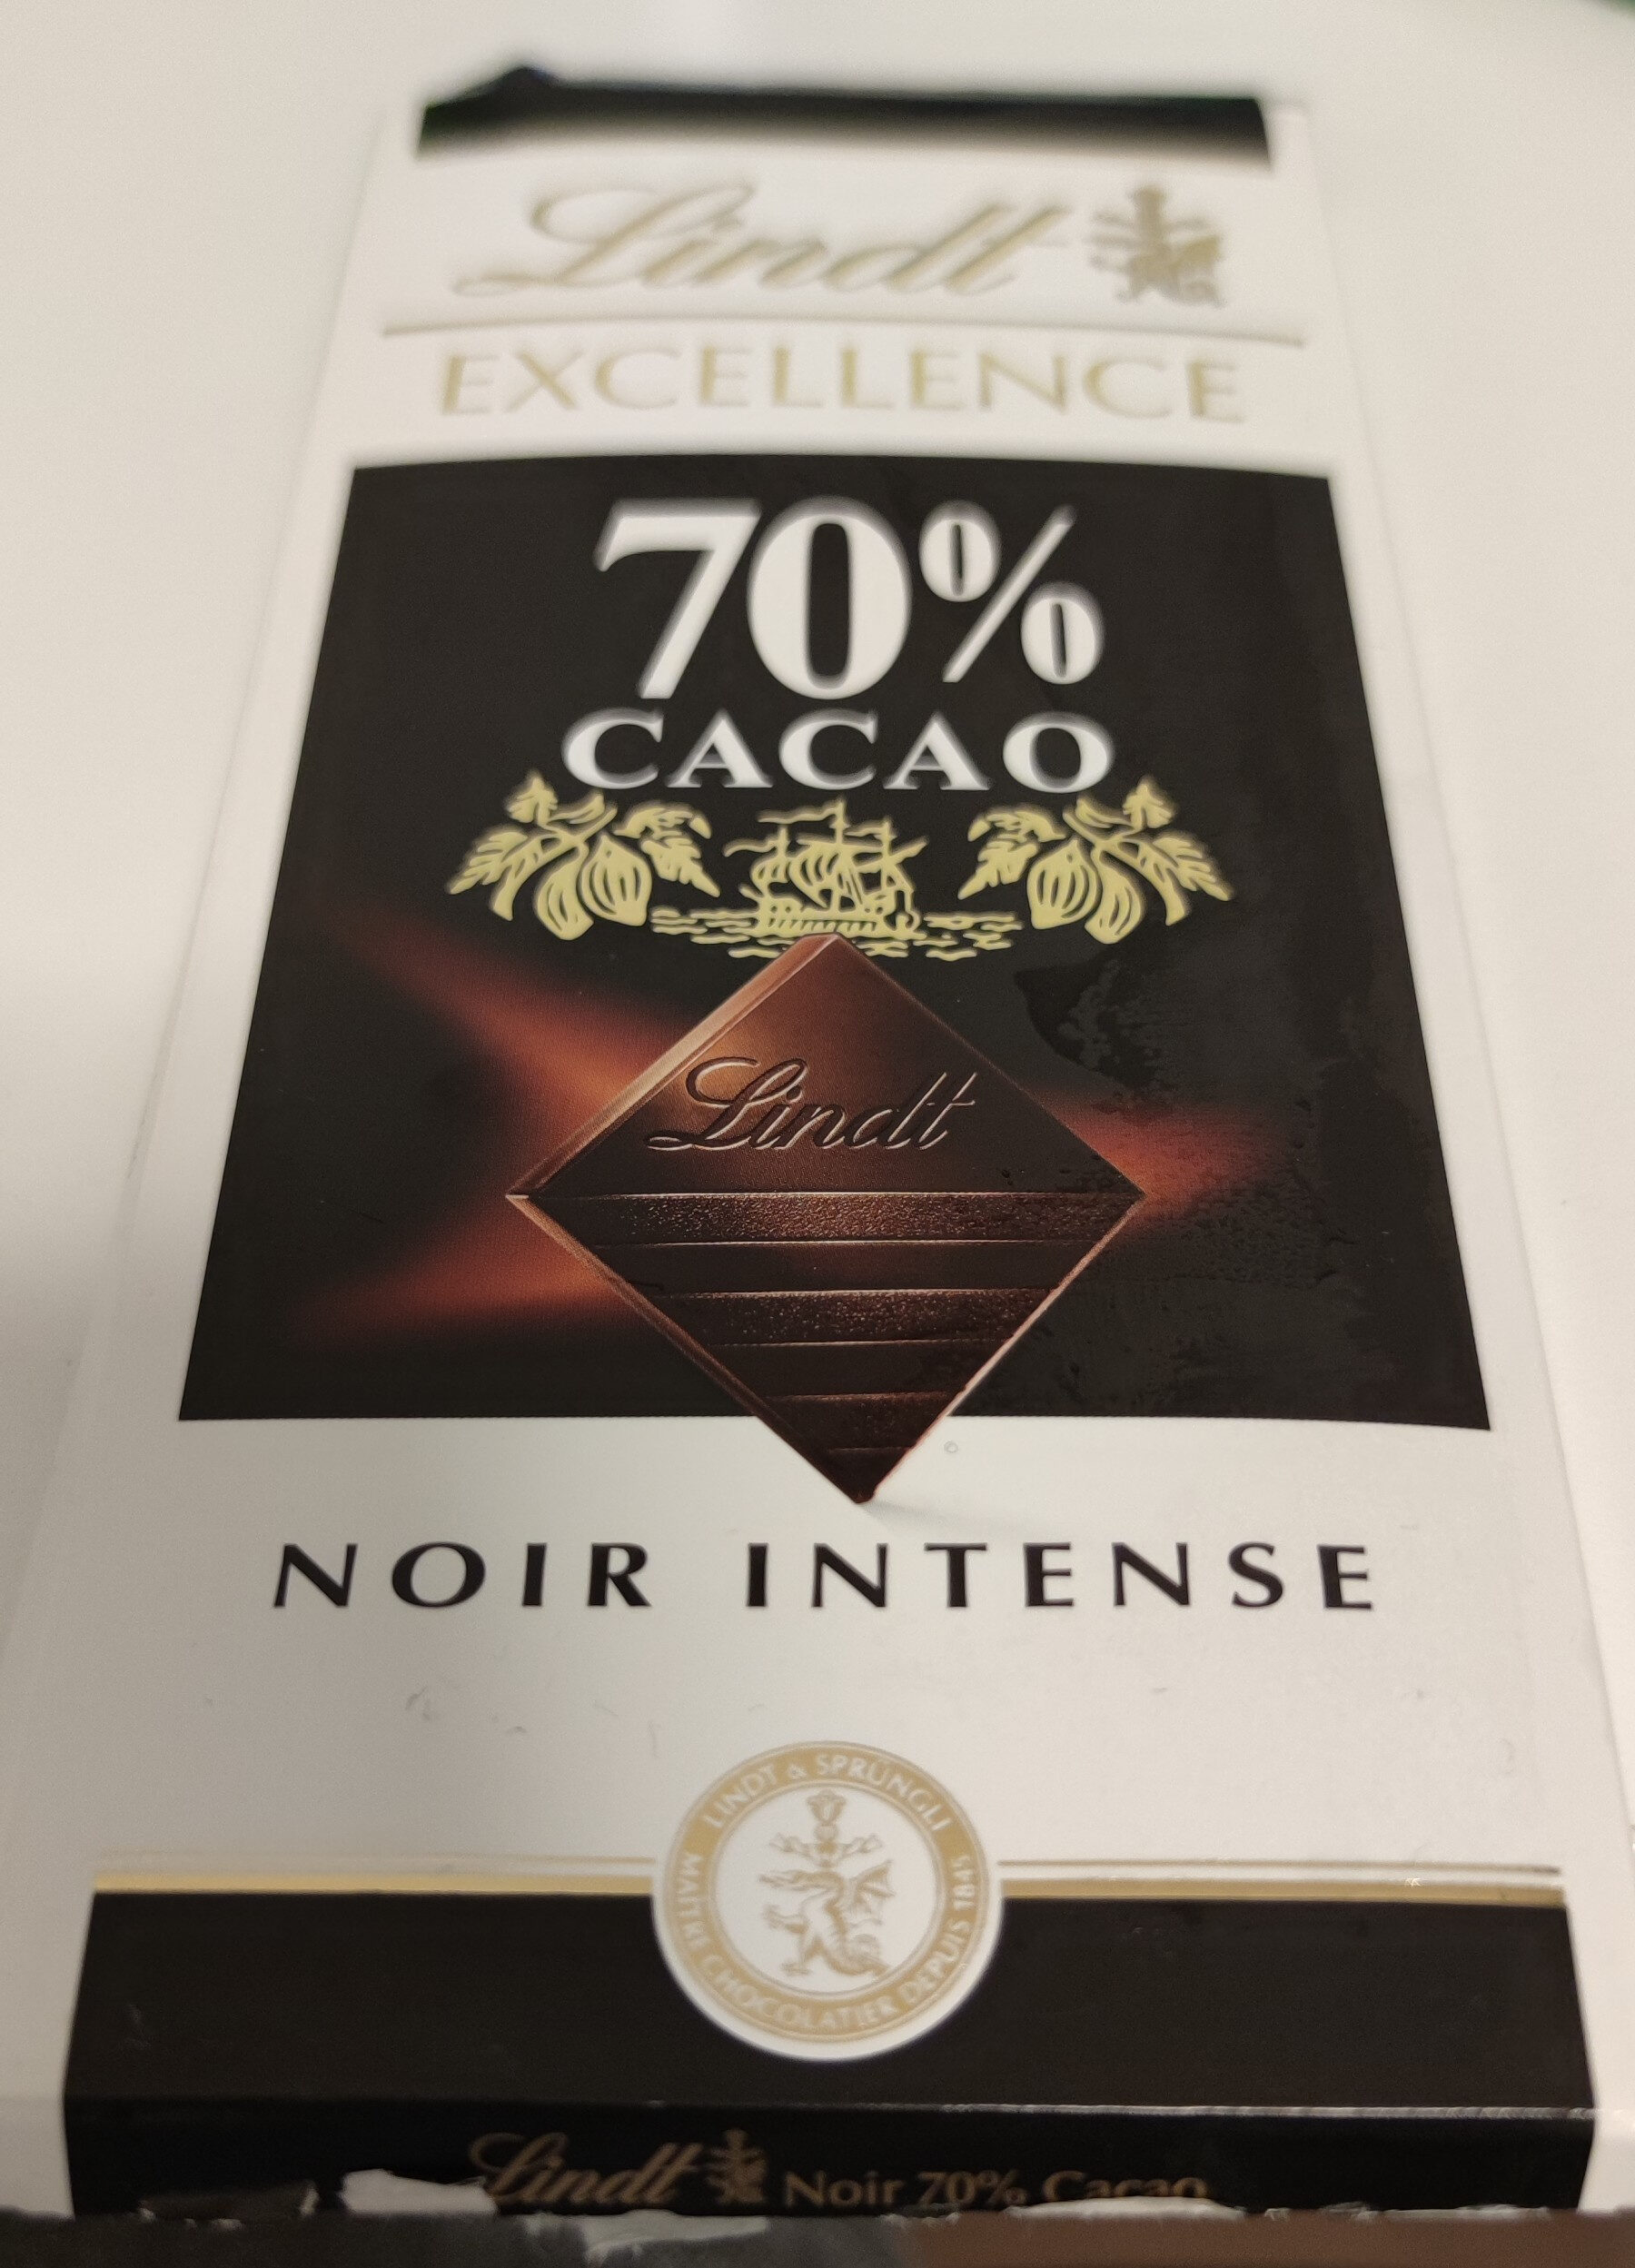 Excellence 70% Cacao Noir Intense - Product - fr